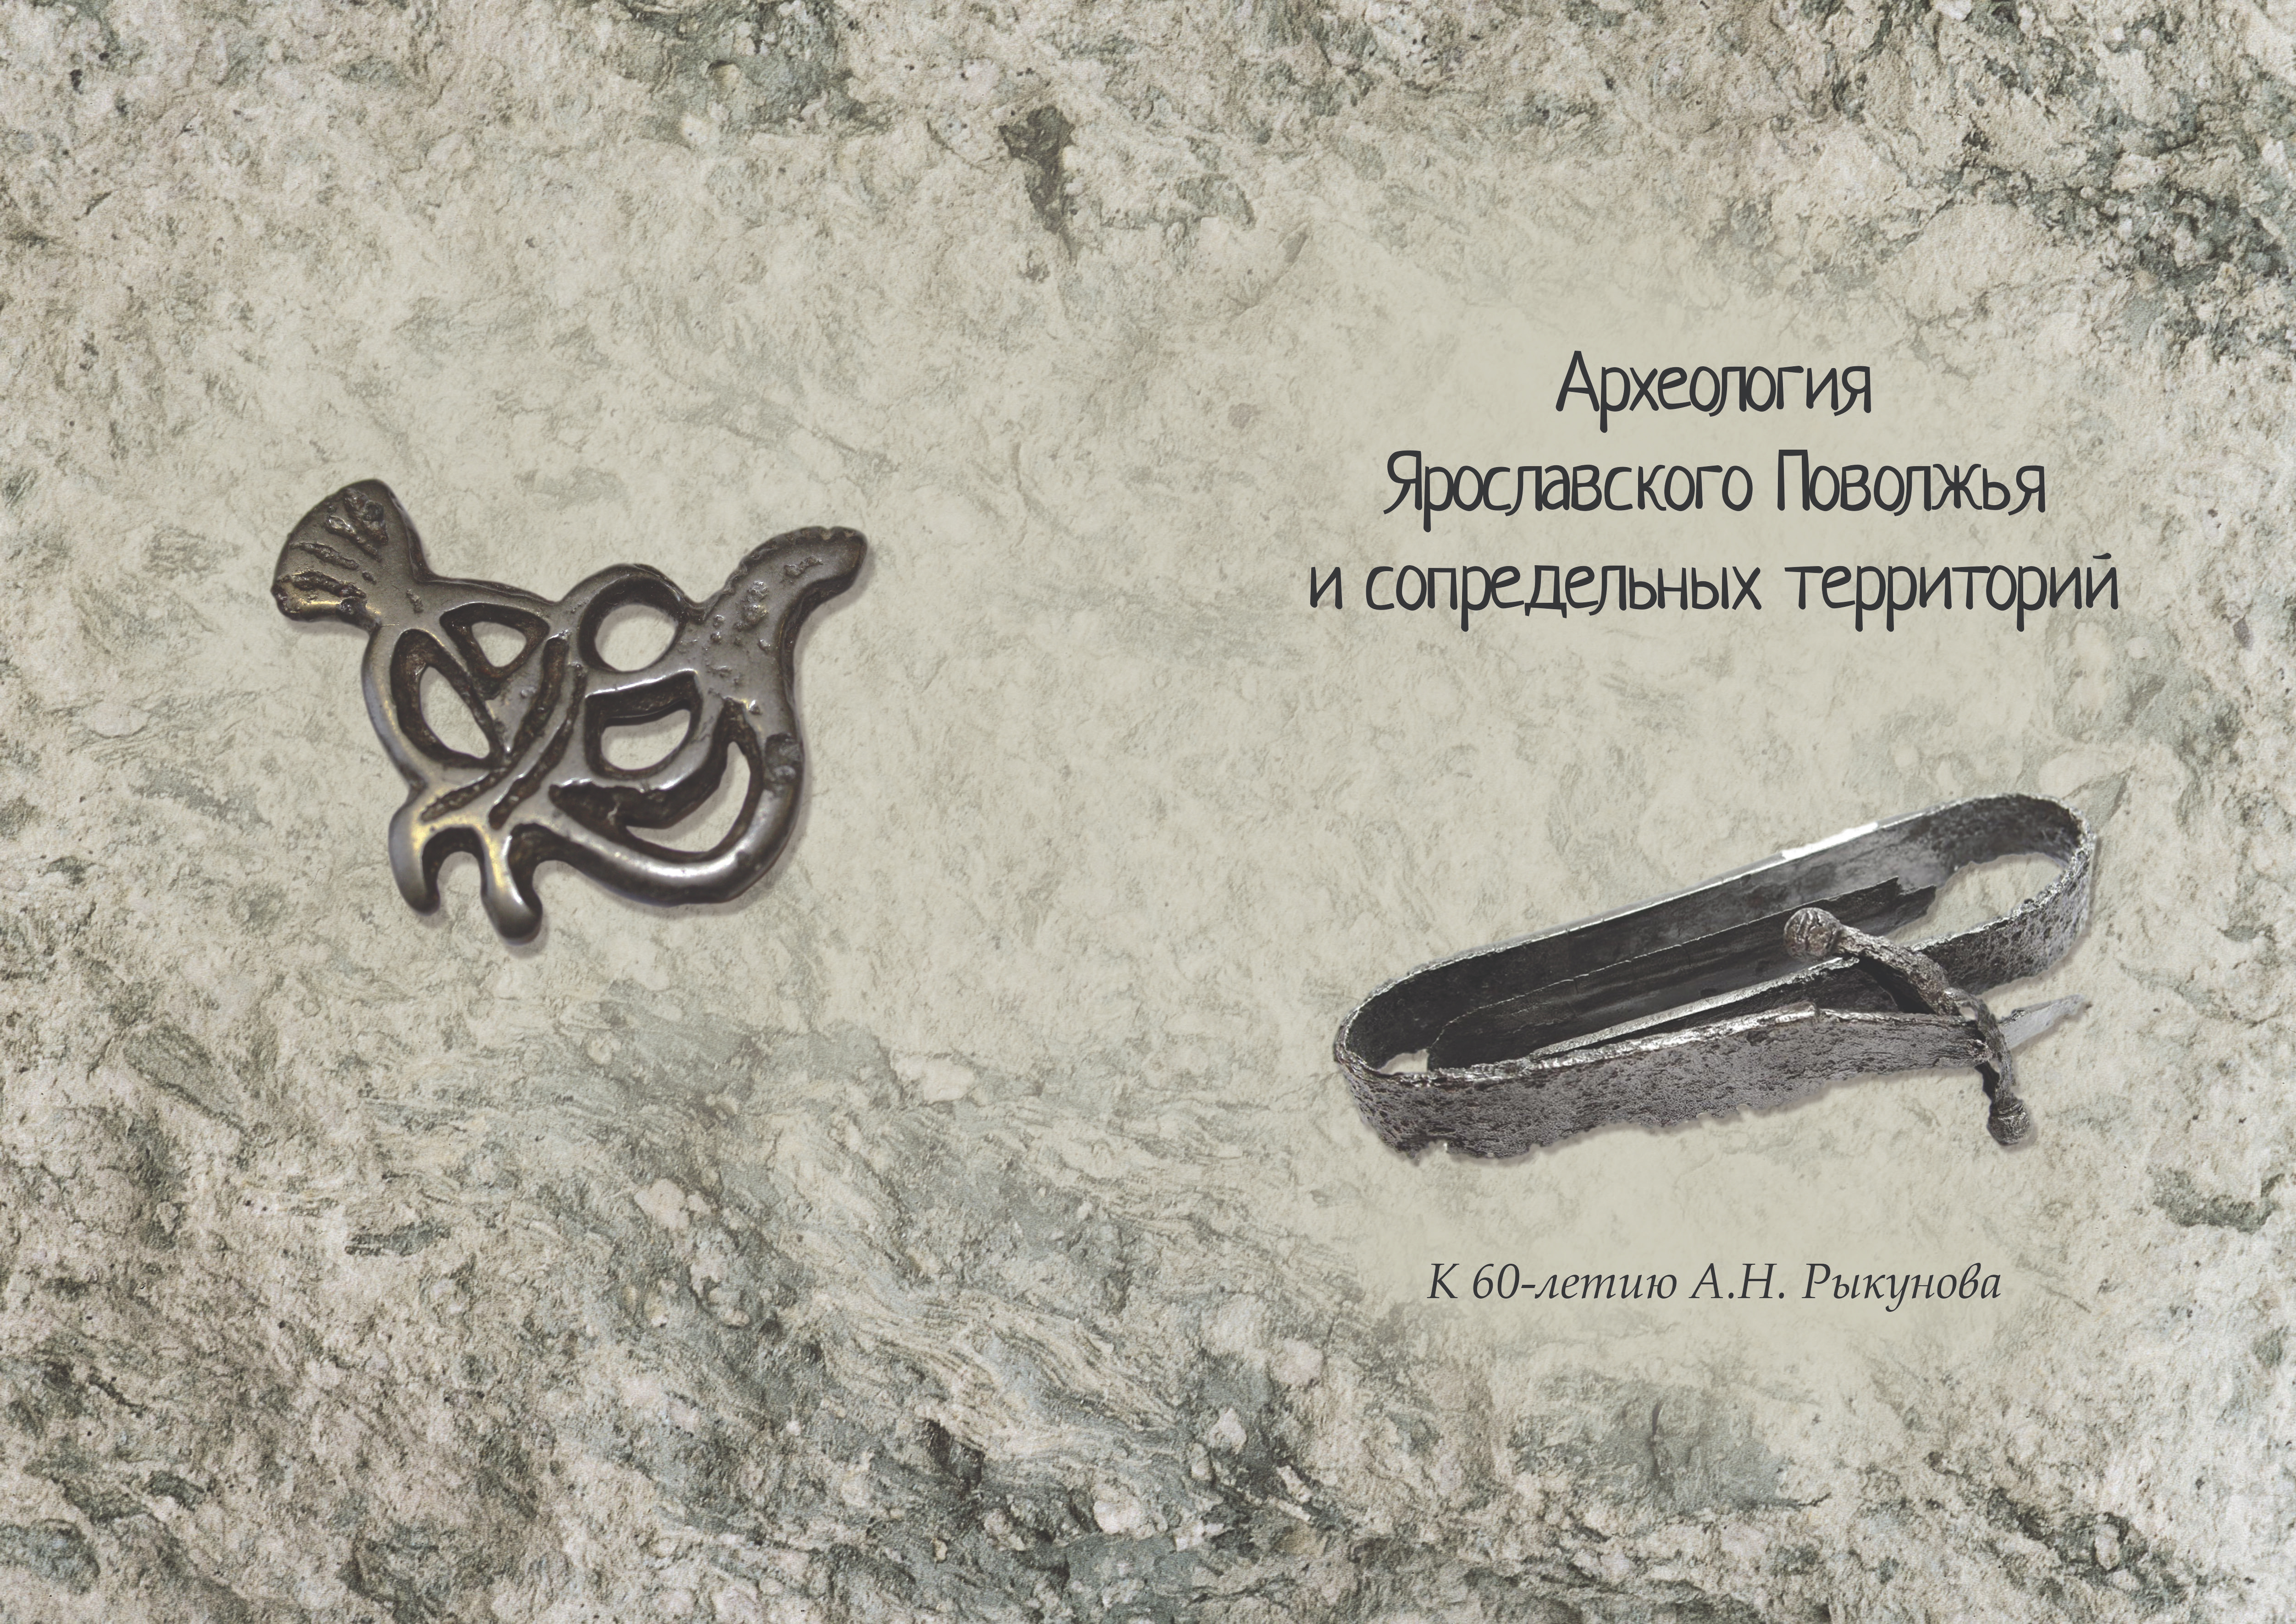 75 Archaeology cover